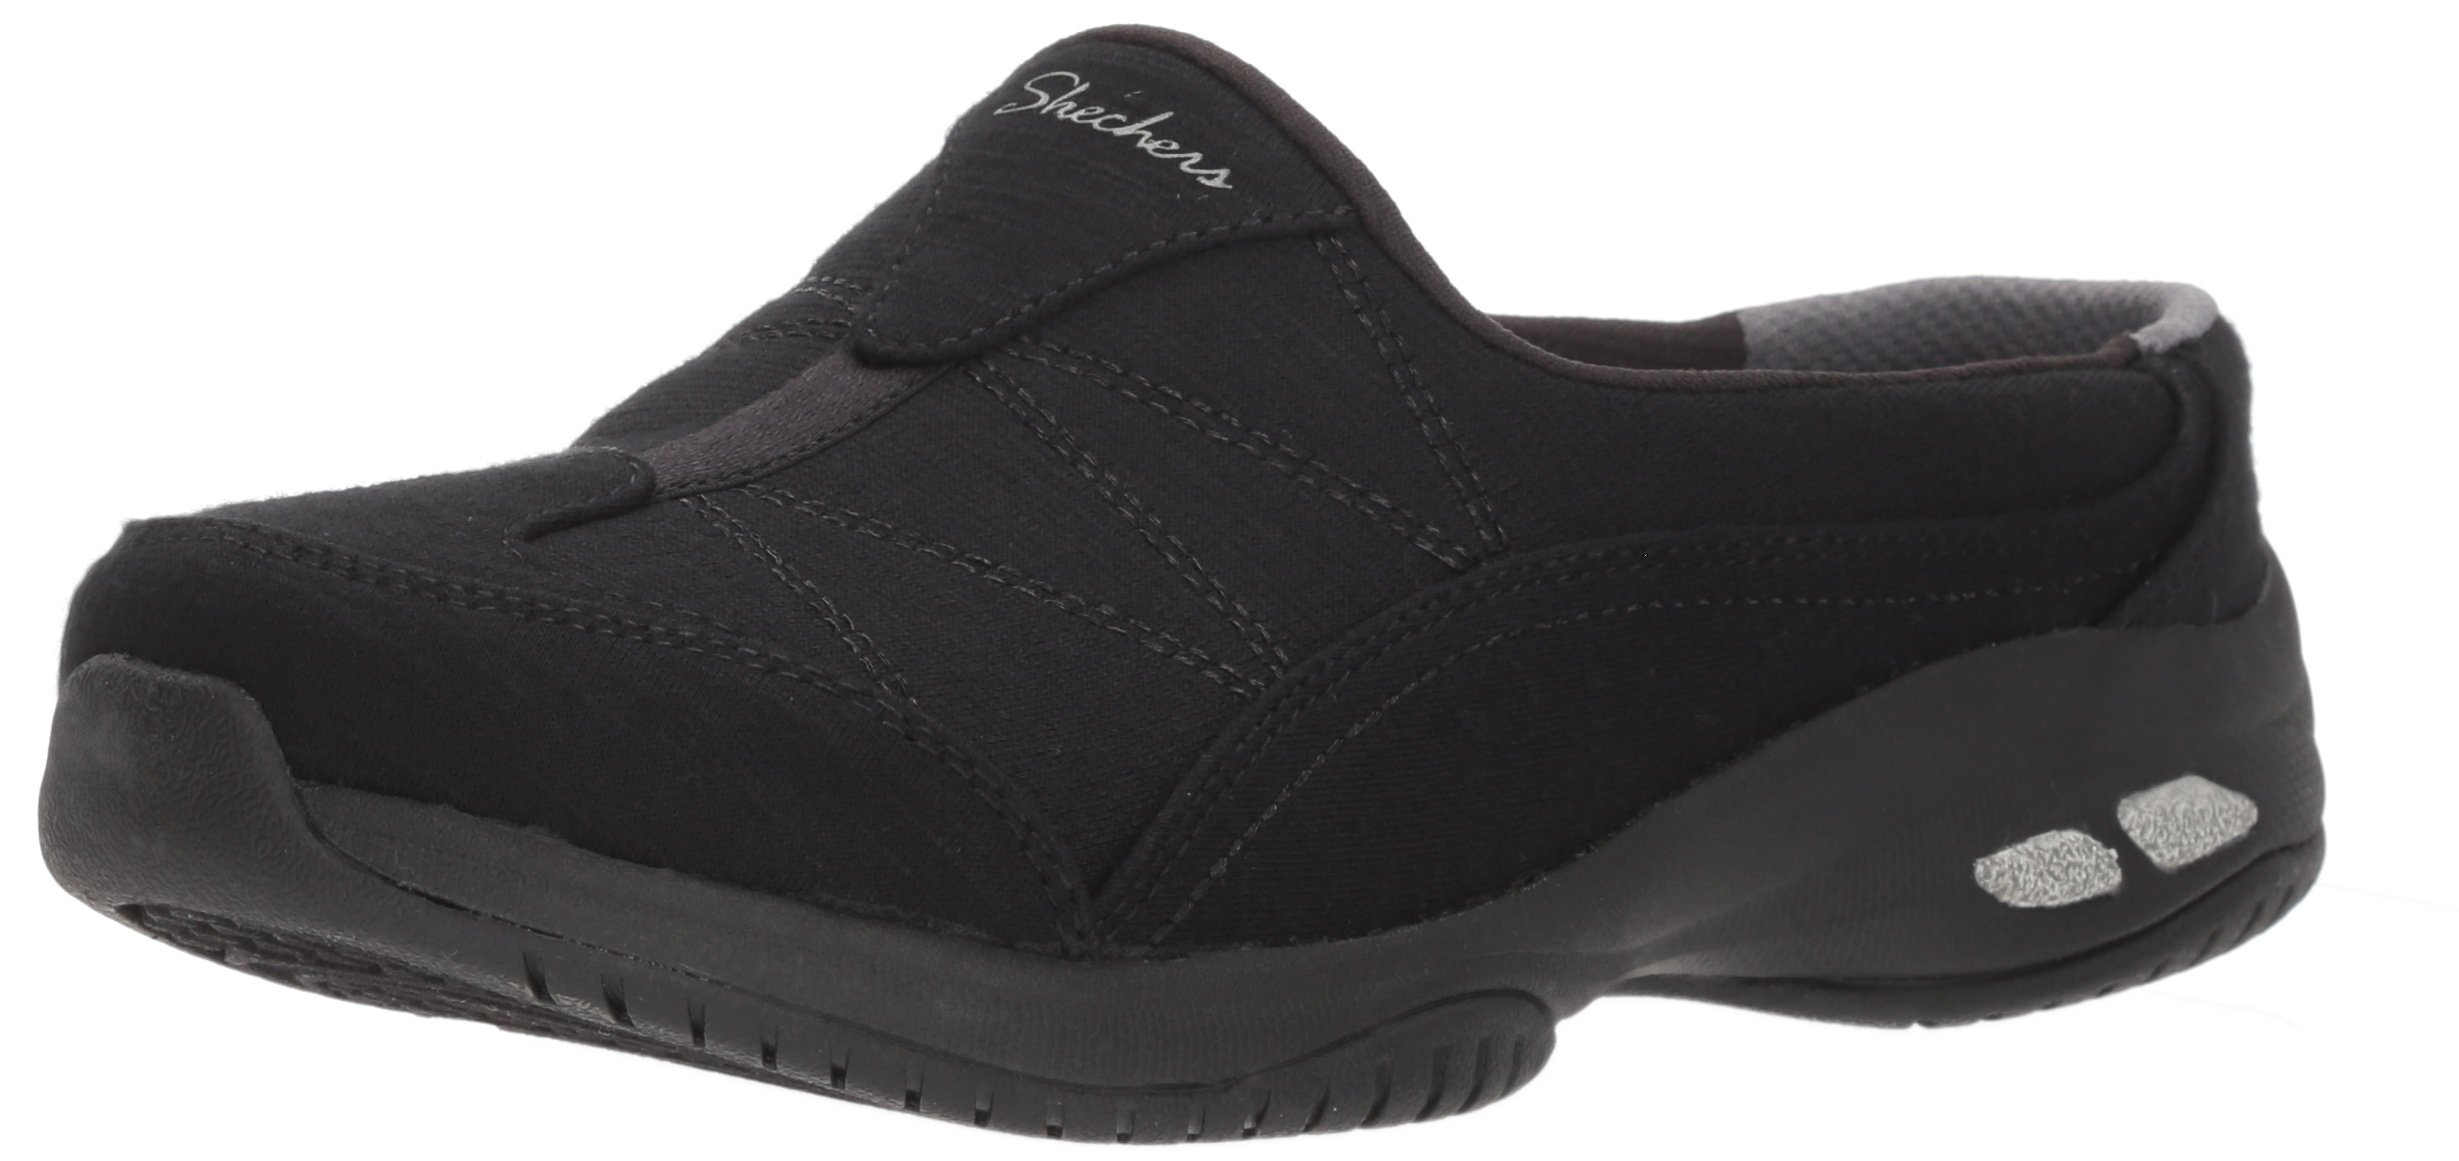 Skechers Women's Commute-Carpool-Heathered Deco Stitch Mule, Black/Black, 9 M US